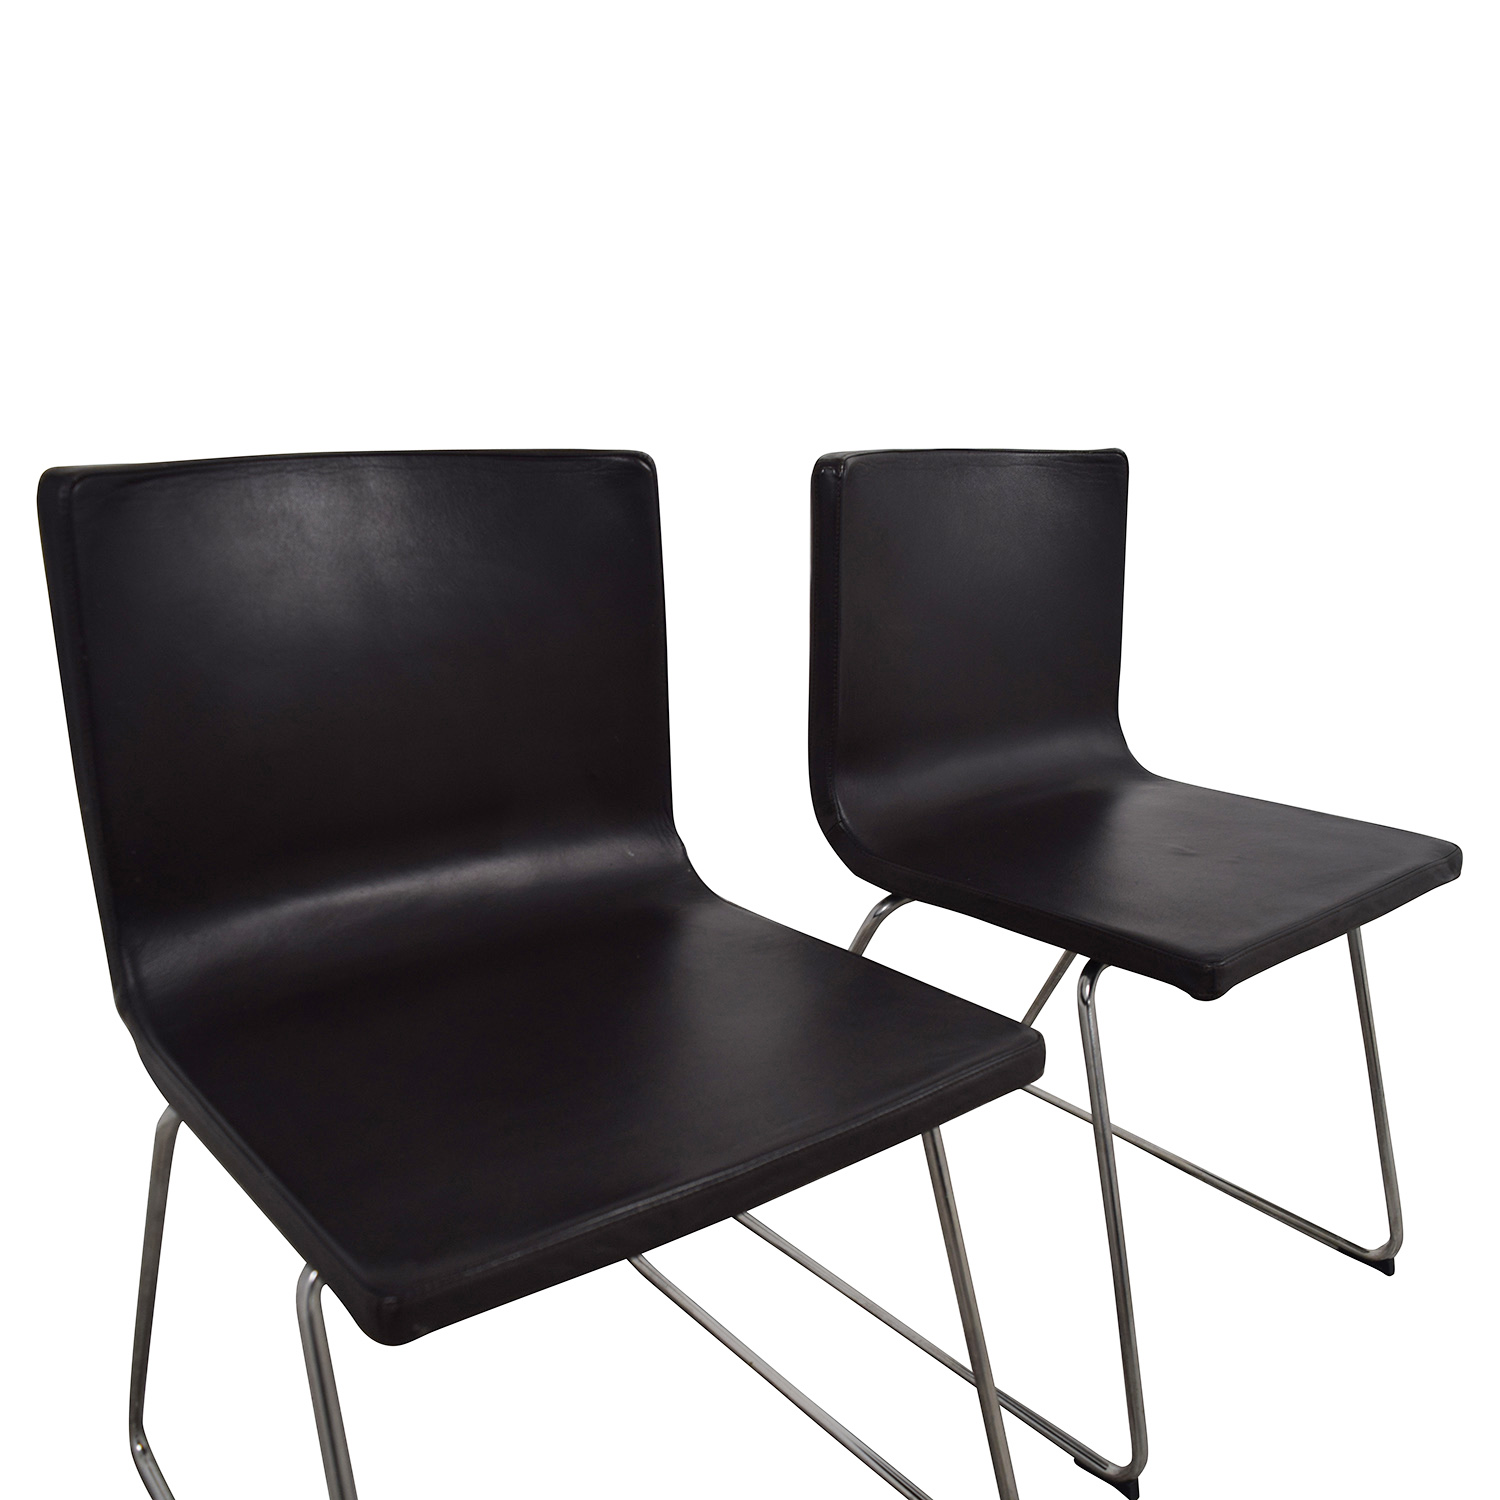 Modern Wall Shelving Units 52% Off - Ikea Ikea Black Accent Chairs / Chairs